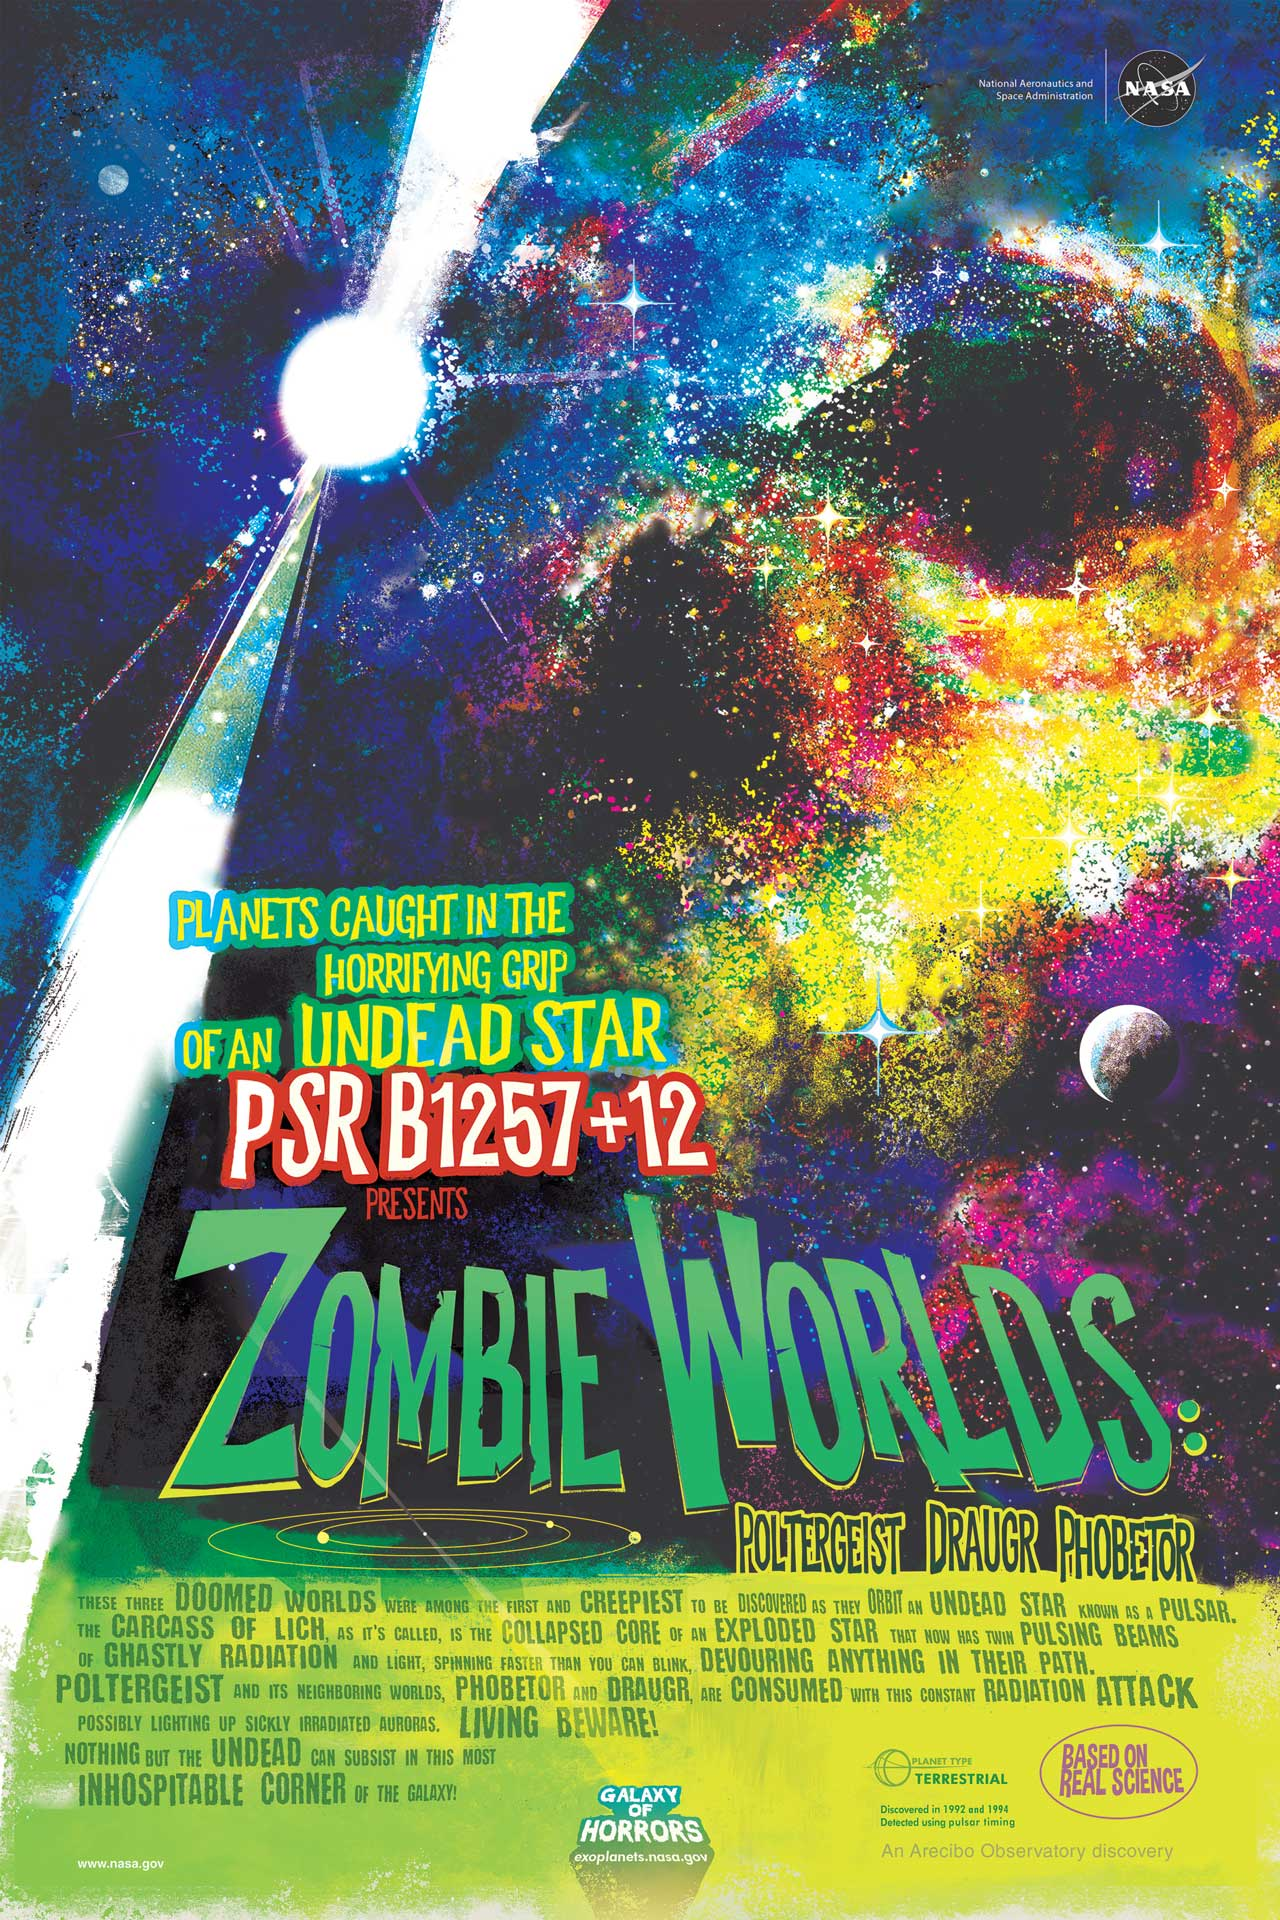 Zombie Worlds Poster showing pulsar planets in a vintage movie poster style saying: Planets caught in the horrifying grasp of an undead star.